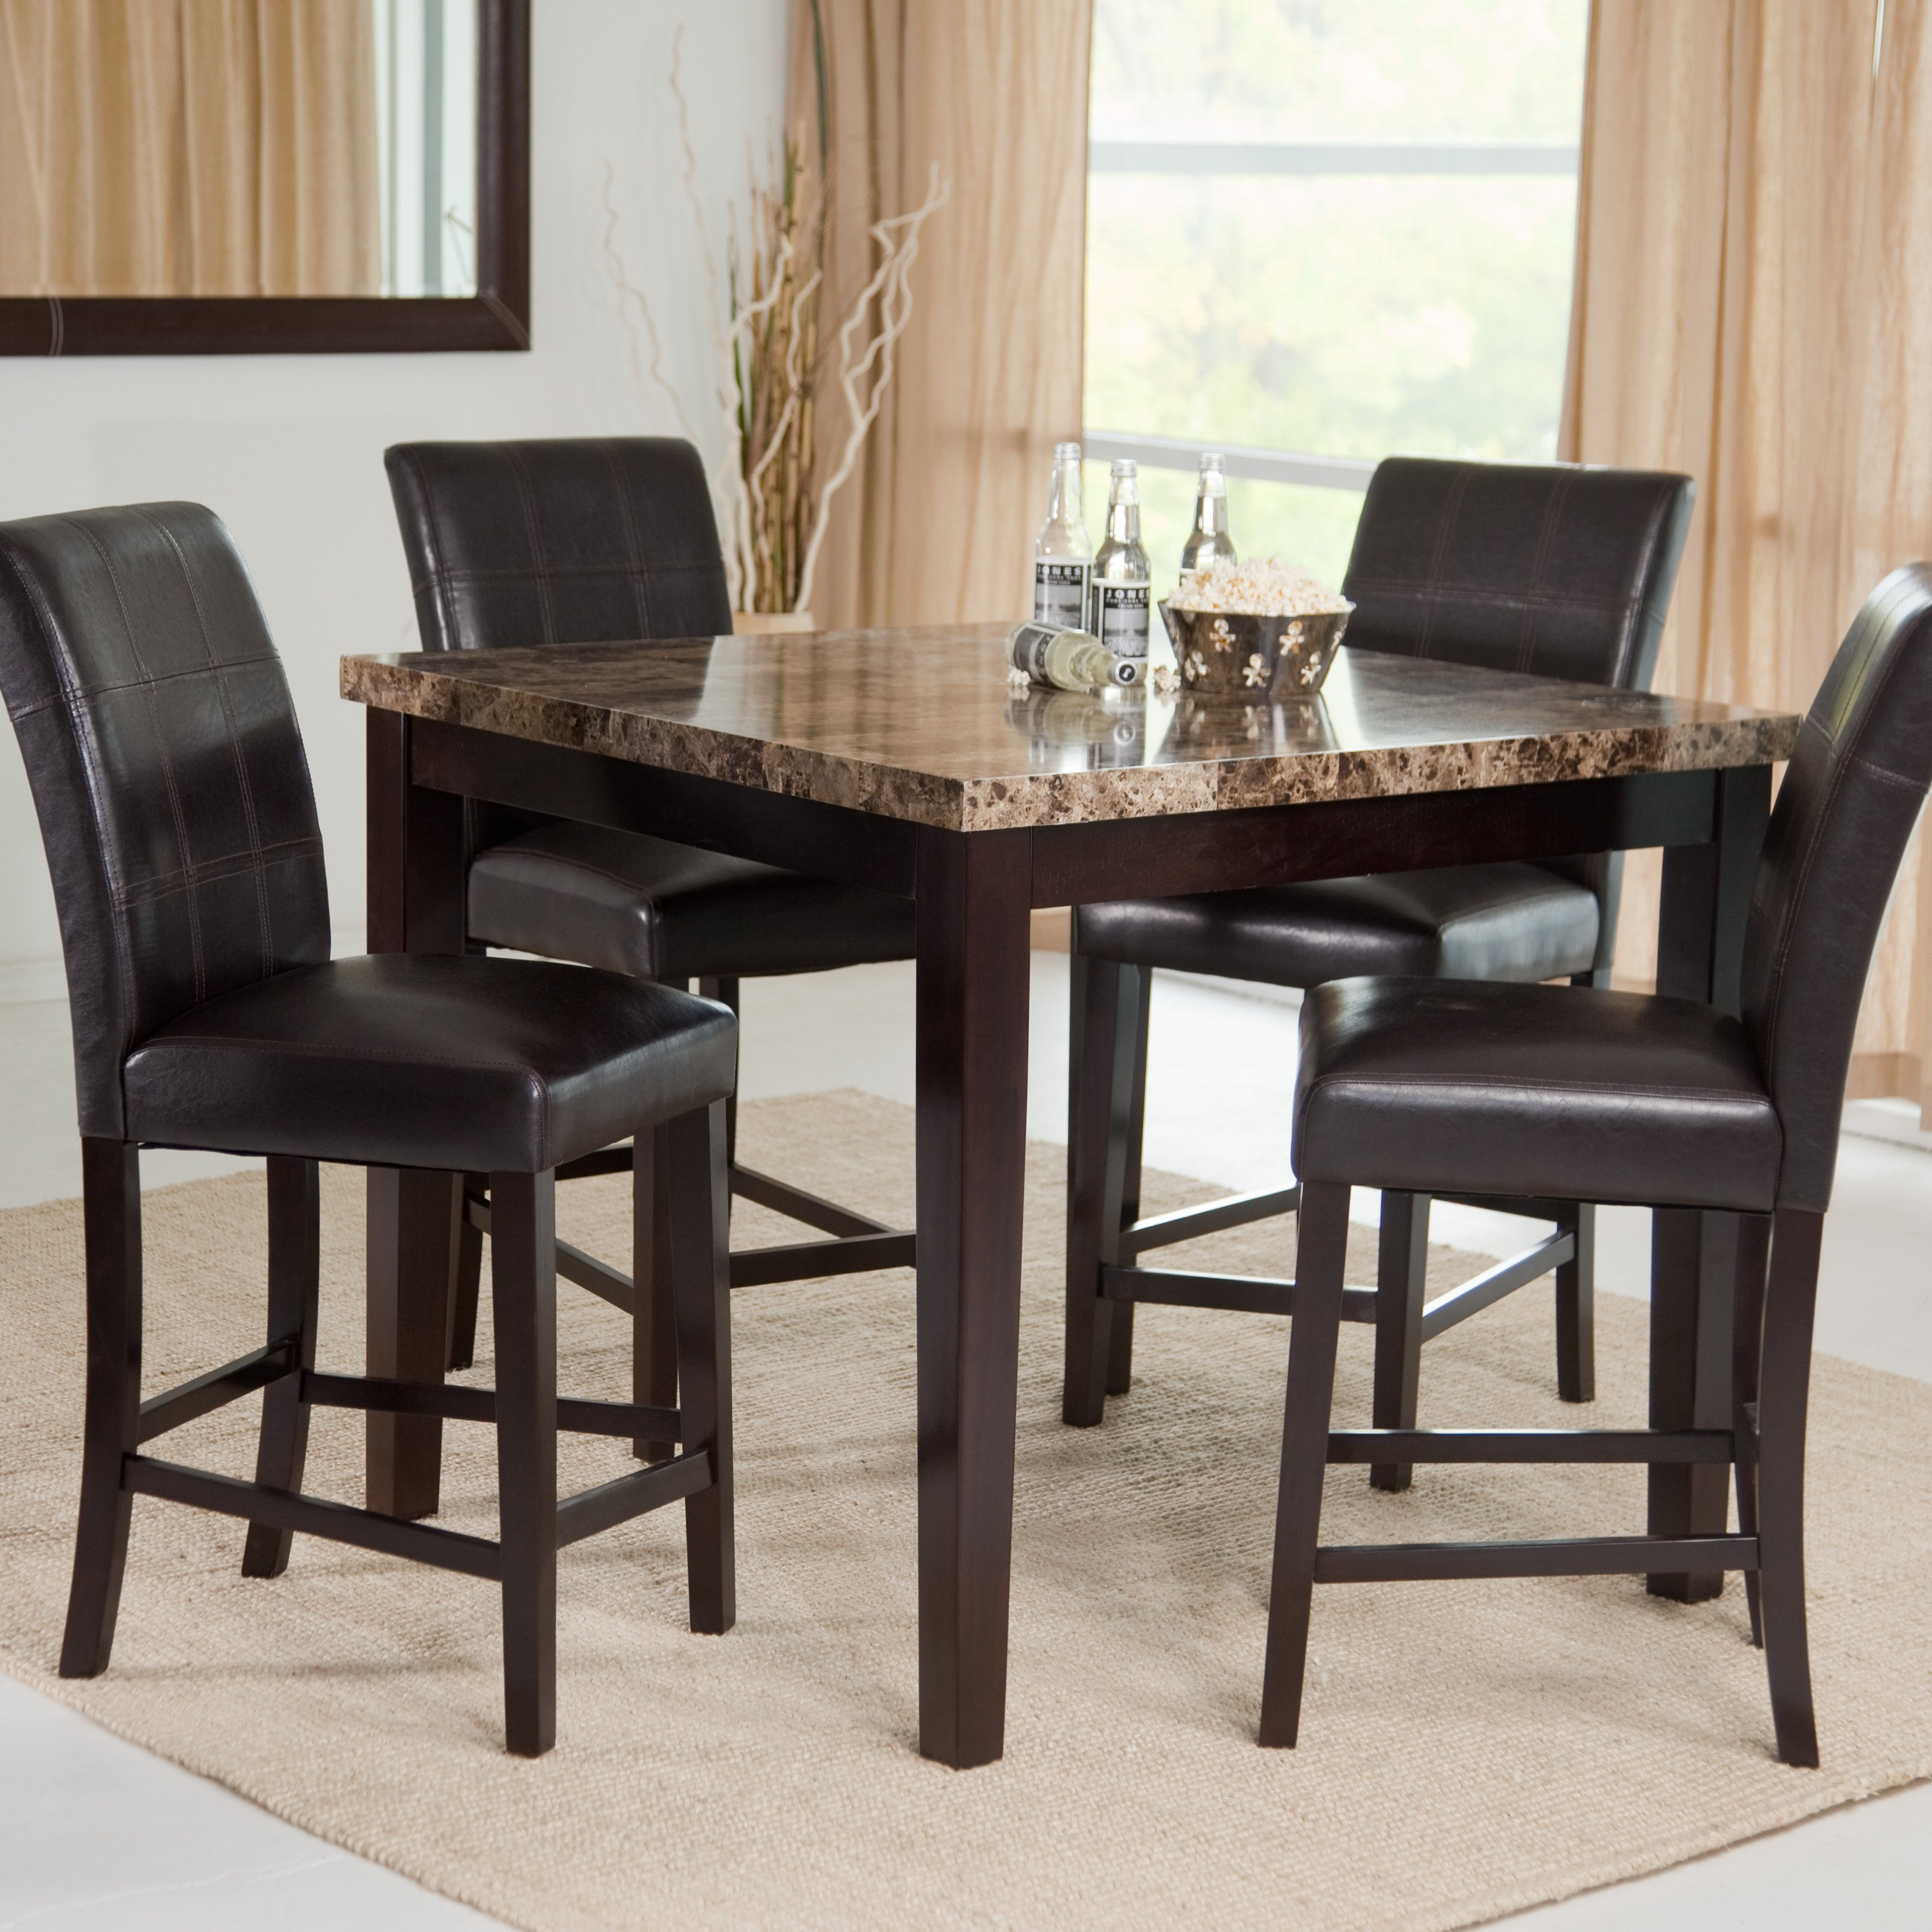 dining room table height furniture of america seline piece  - palazzo piece counter height dining set